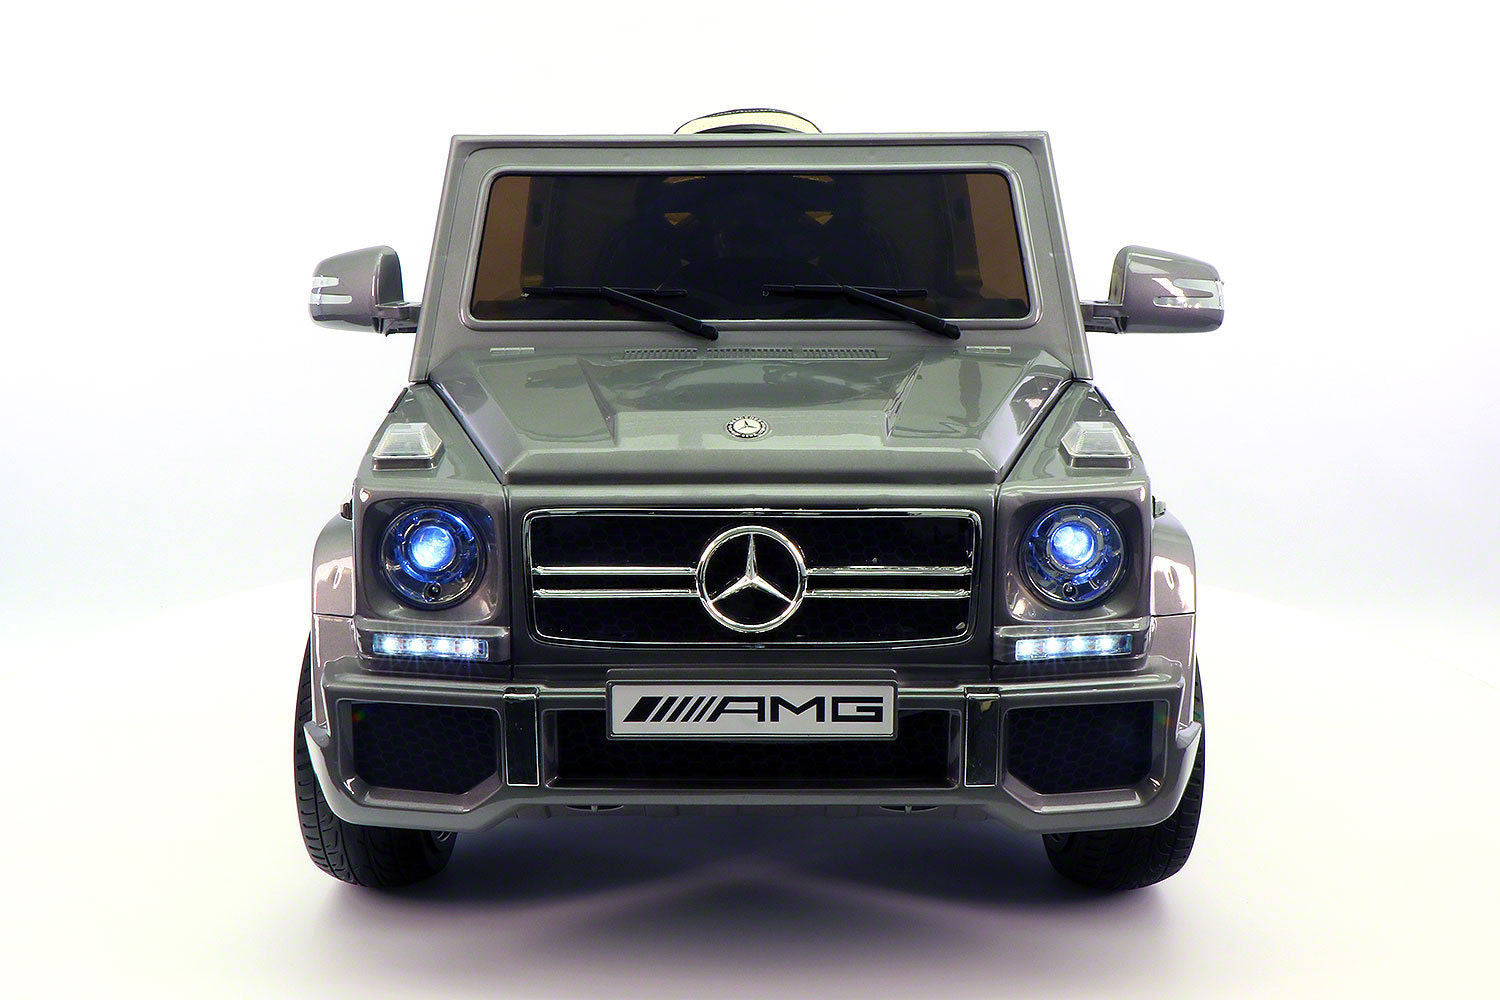 Mercedes benz g65 amg 12v battery powered ride on toy car for Mercedes benz batteries